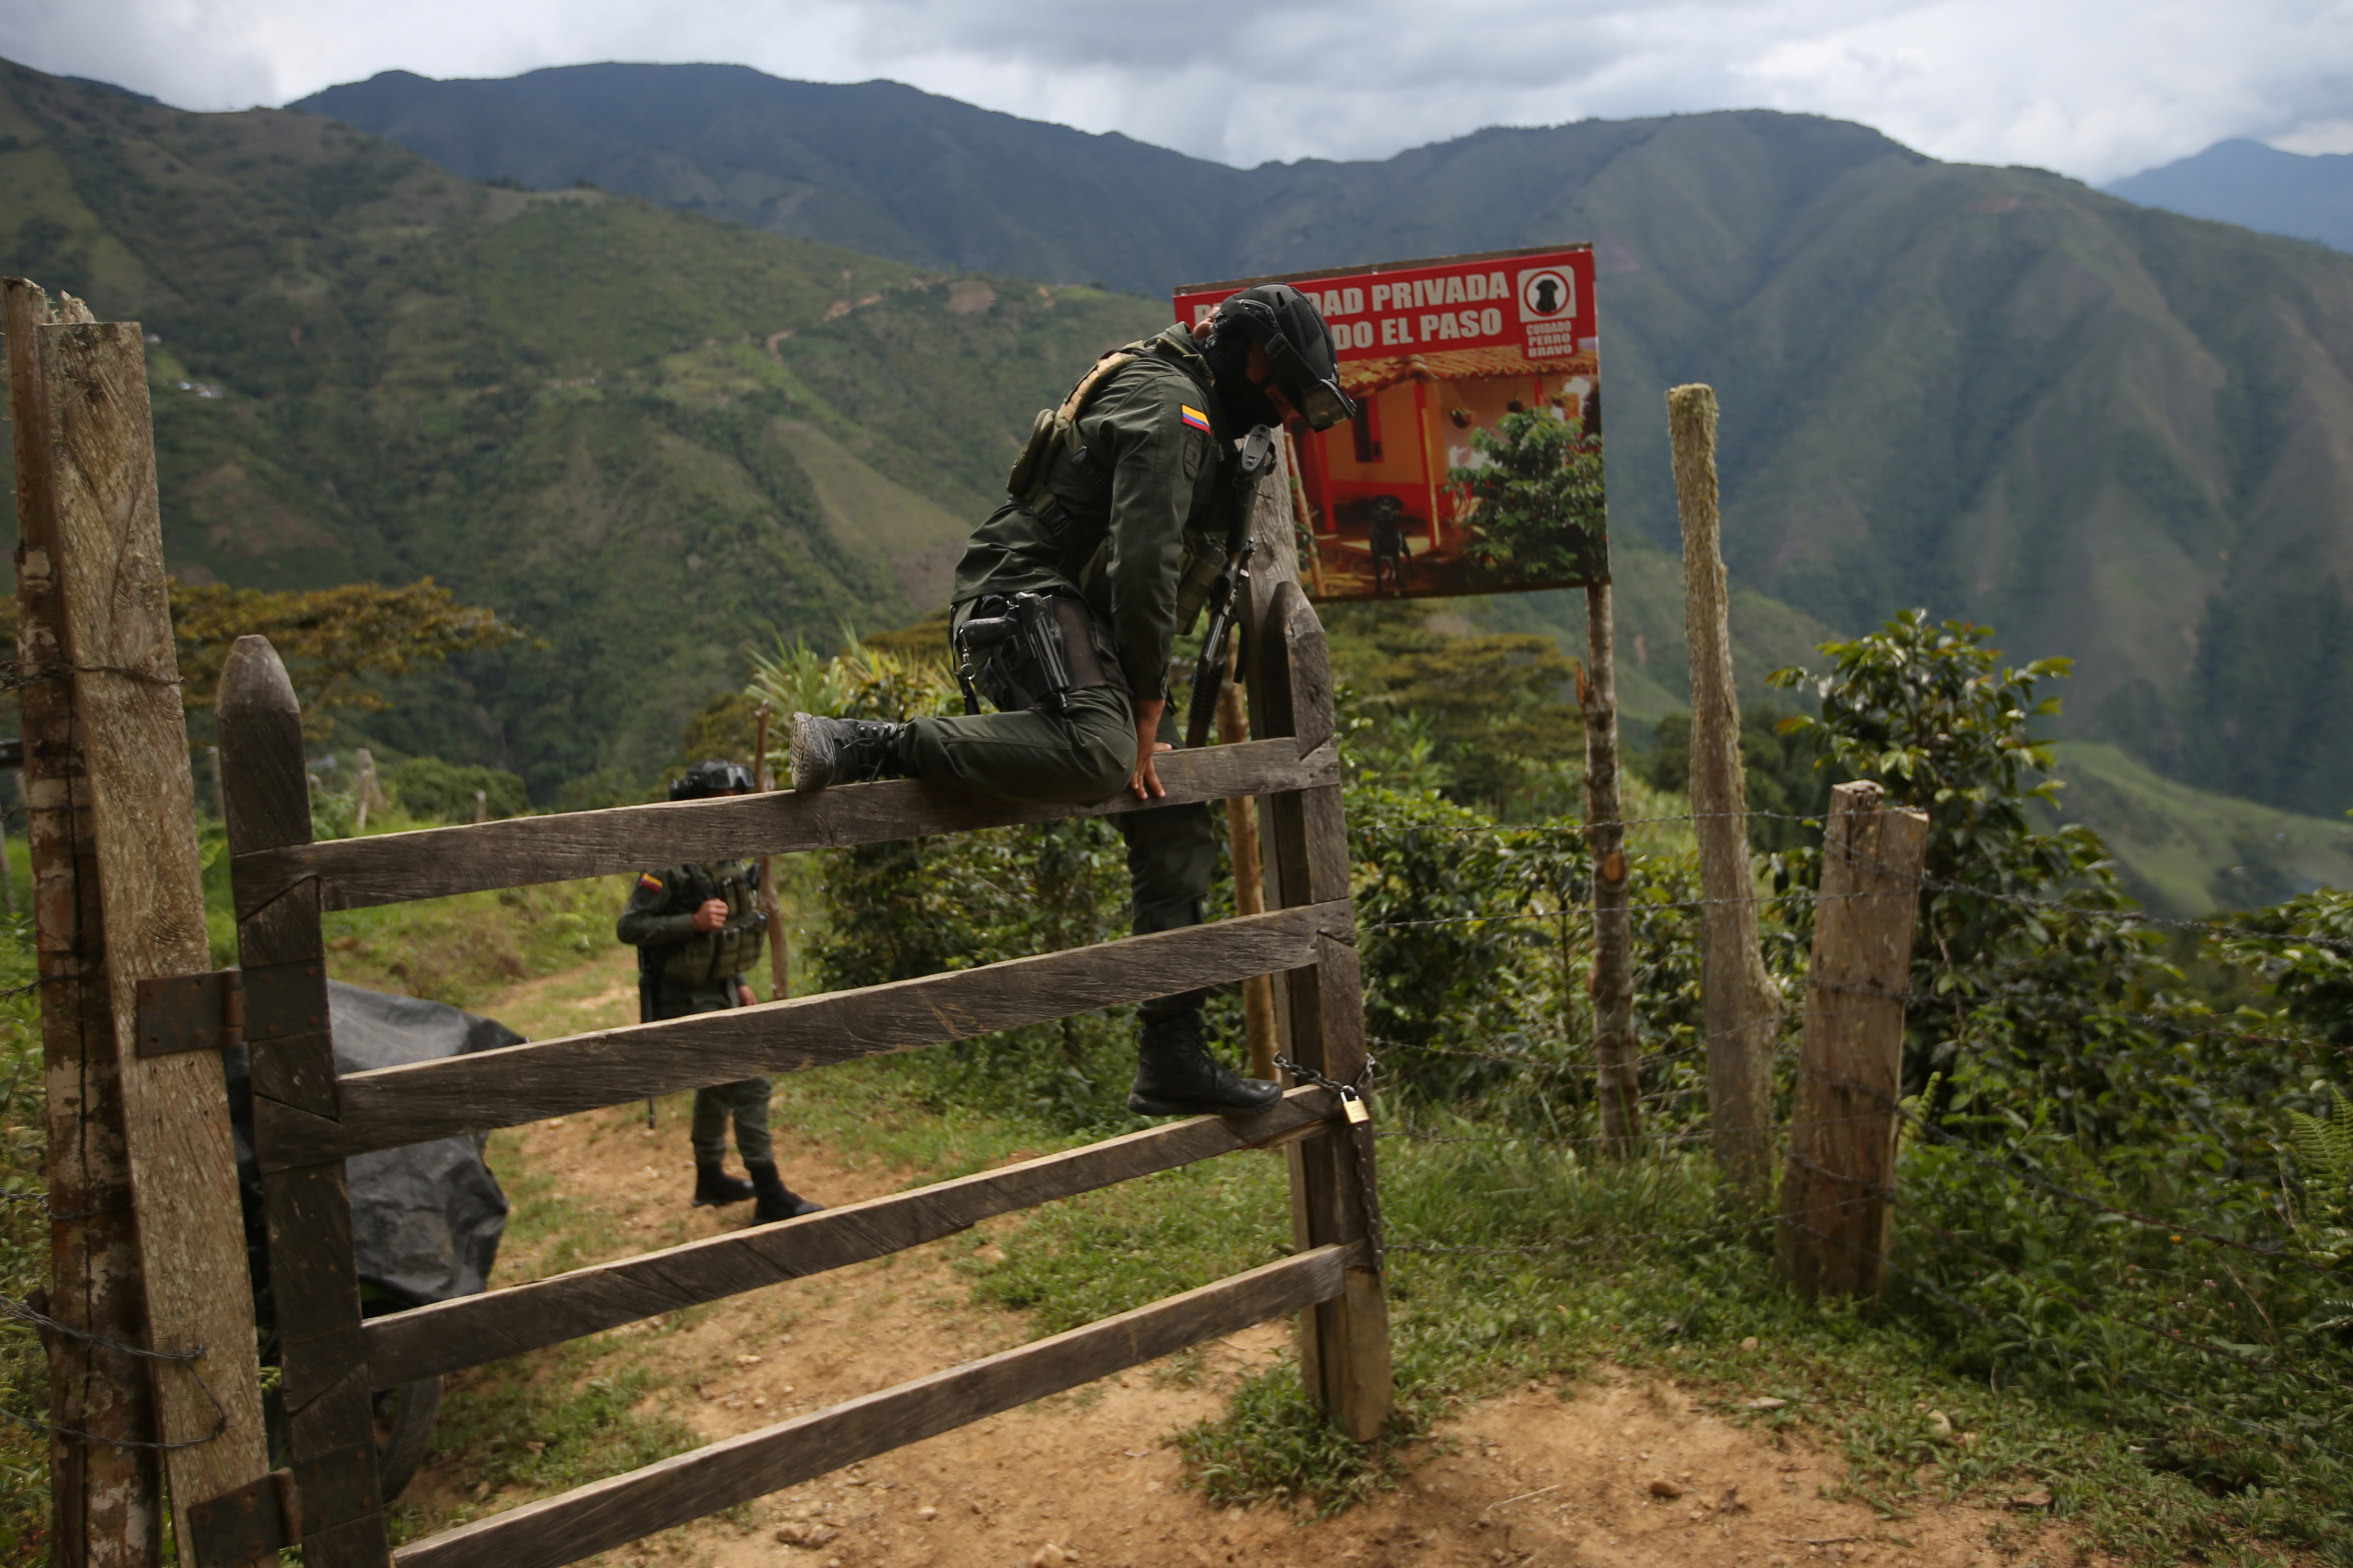 A policeman climbs over a fence to access a road that leads to an illegal mine in Buritica, Colombia April 20, 2021. Picture taken April 20, 2021. REUTERS/Luisa Gonzalez